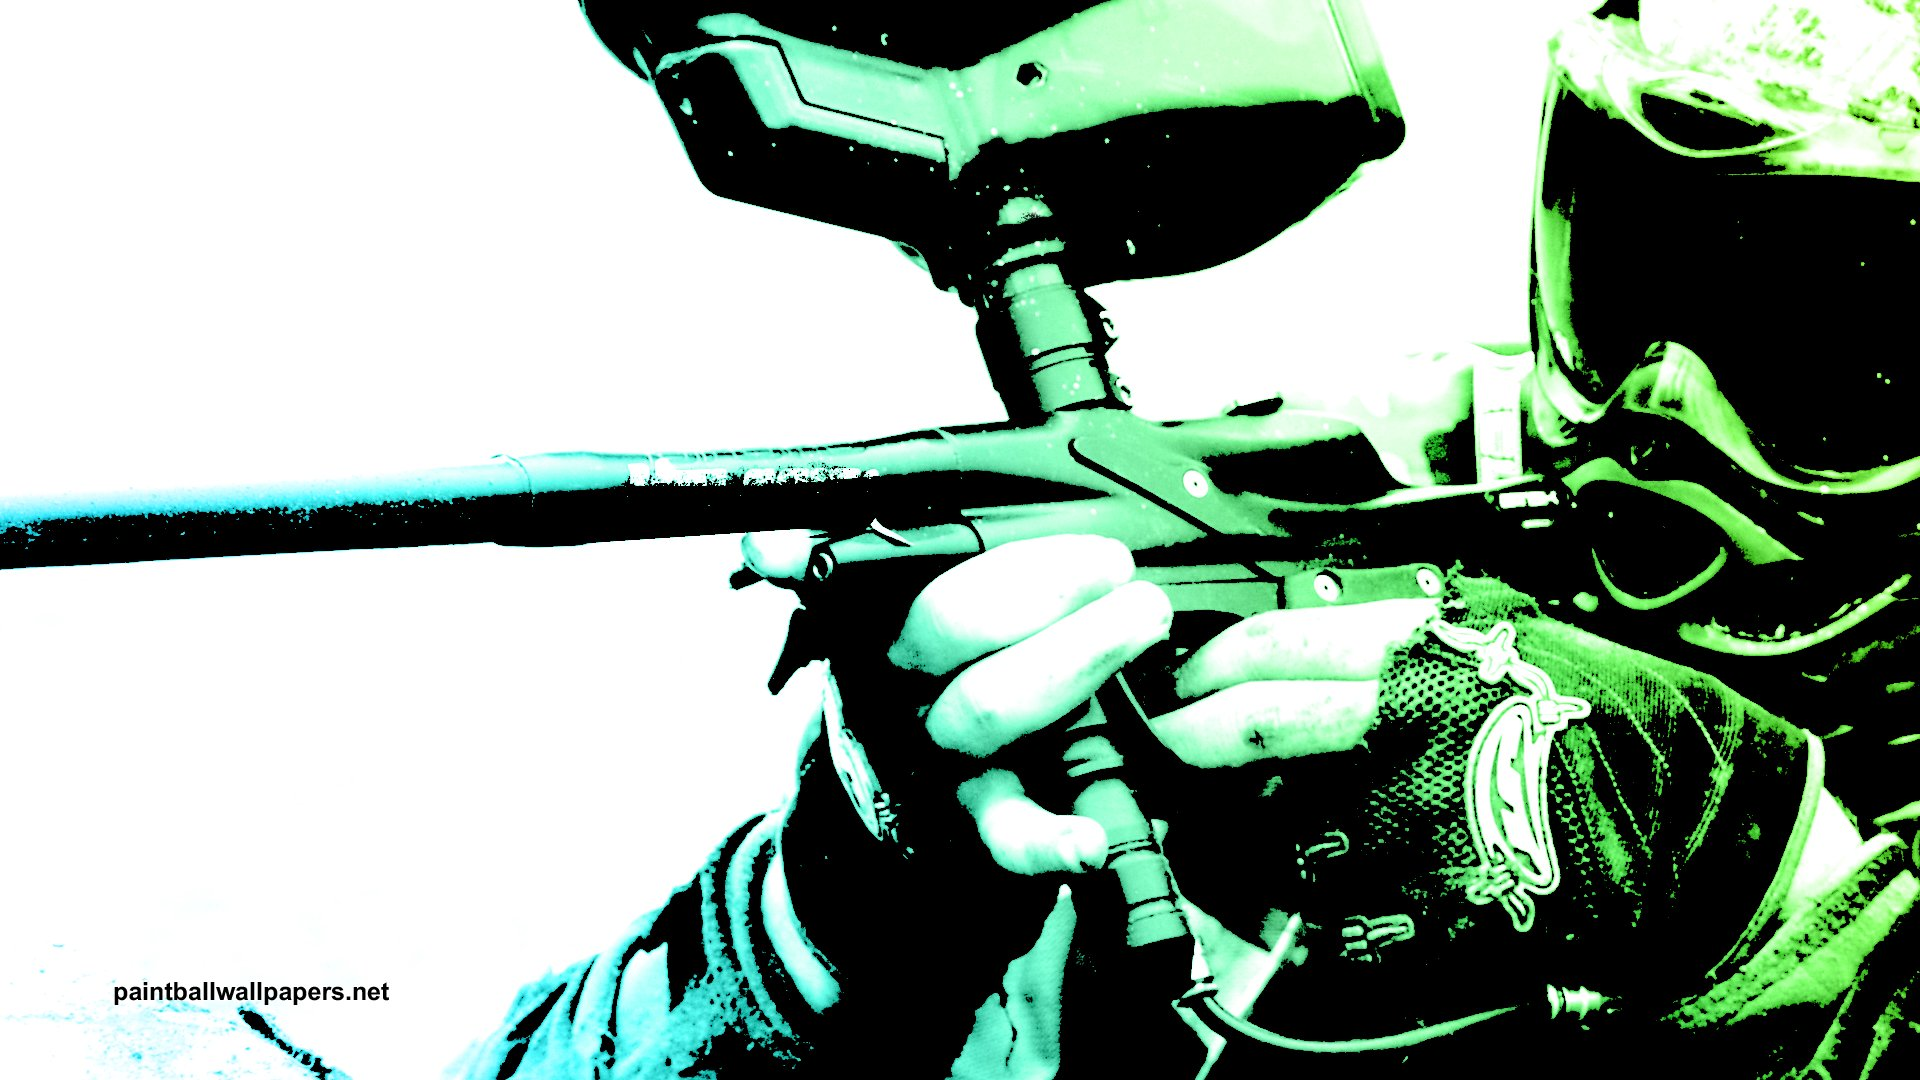 paintball wallpapers | WallpaperUP